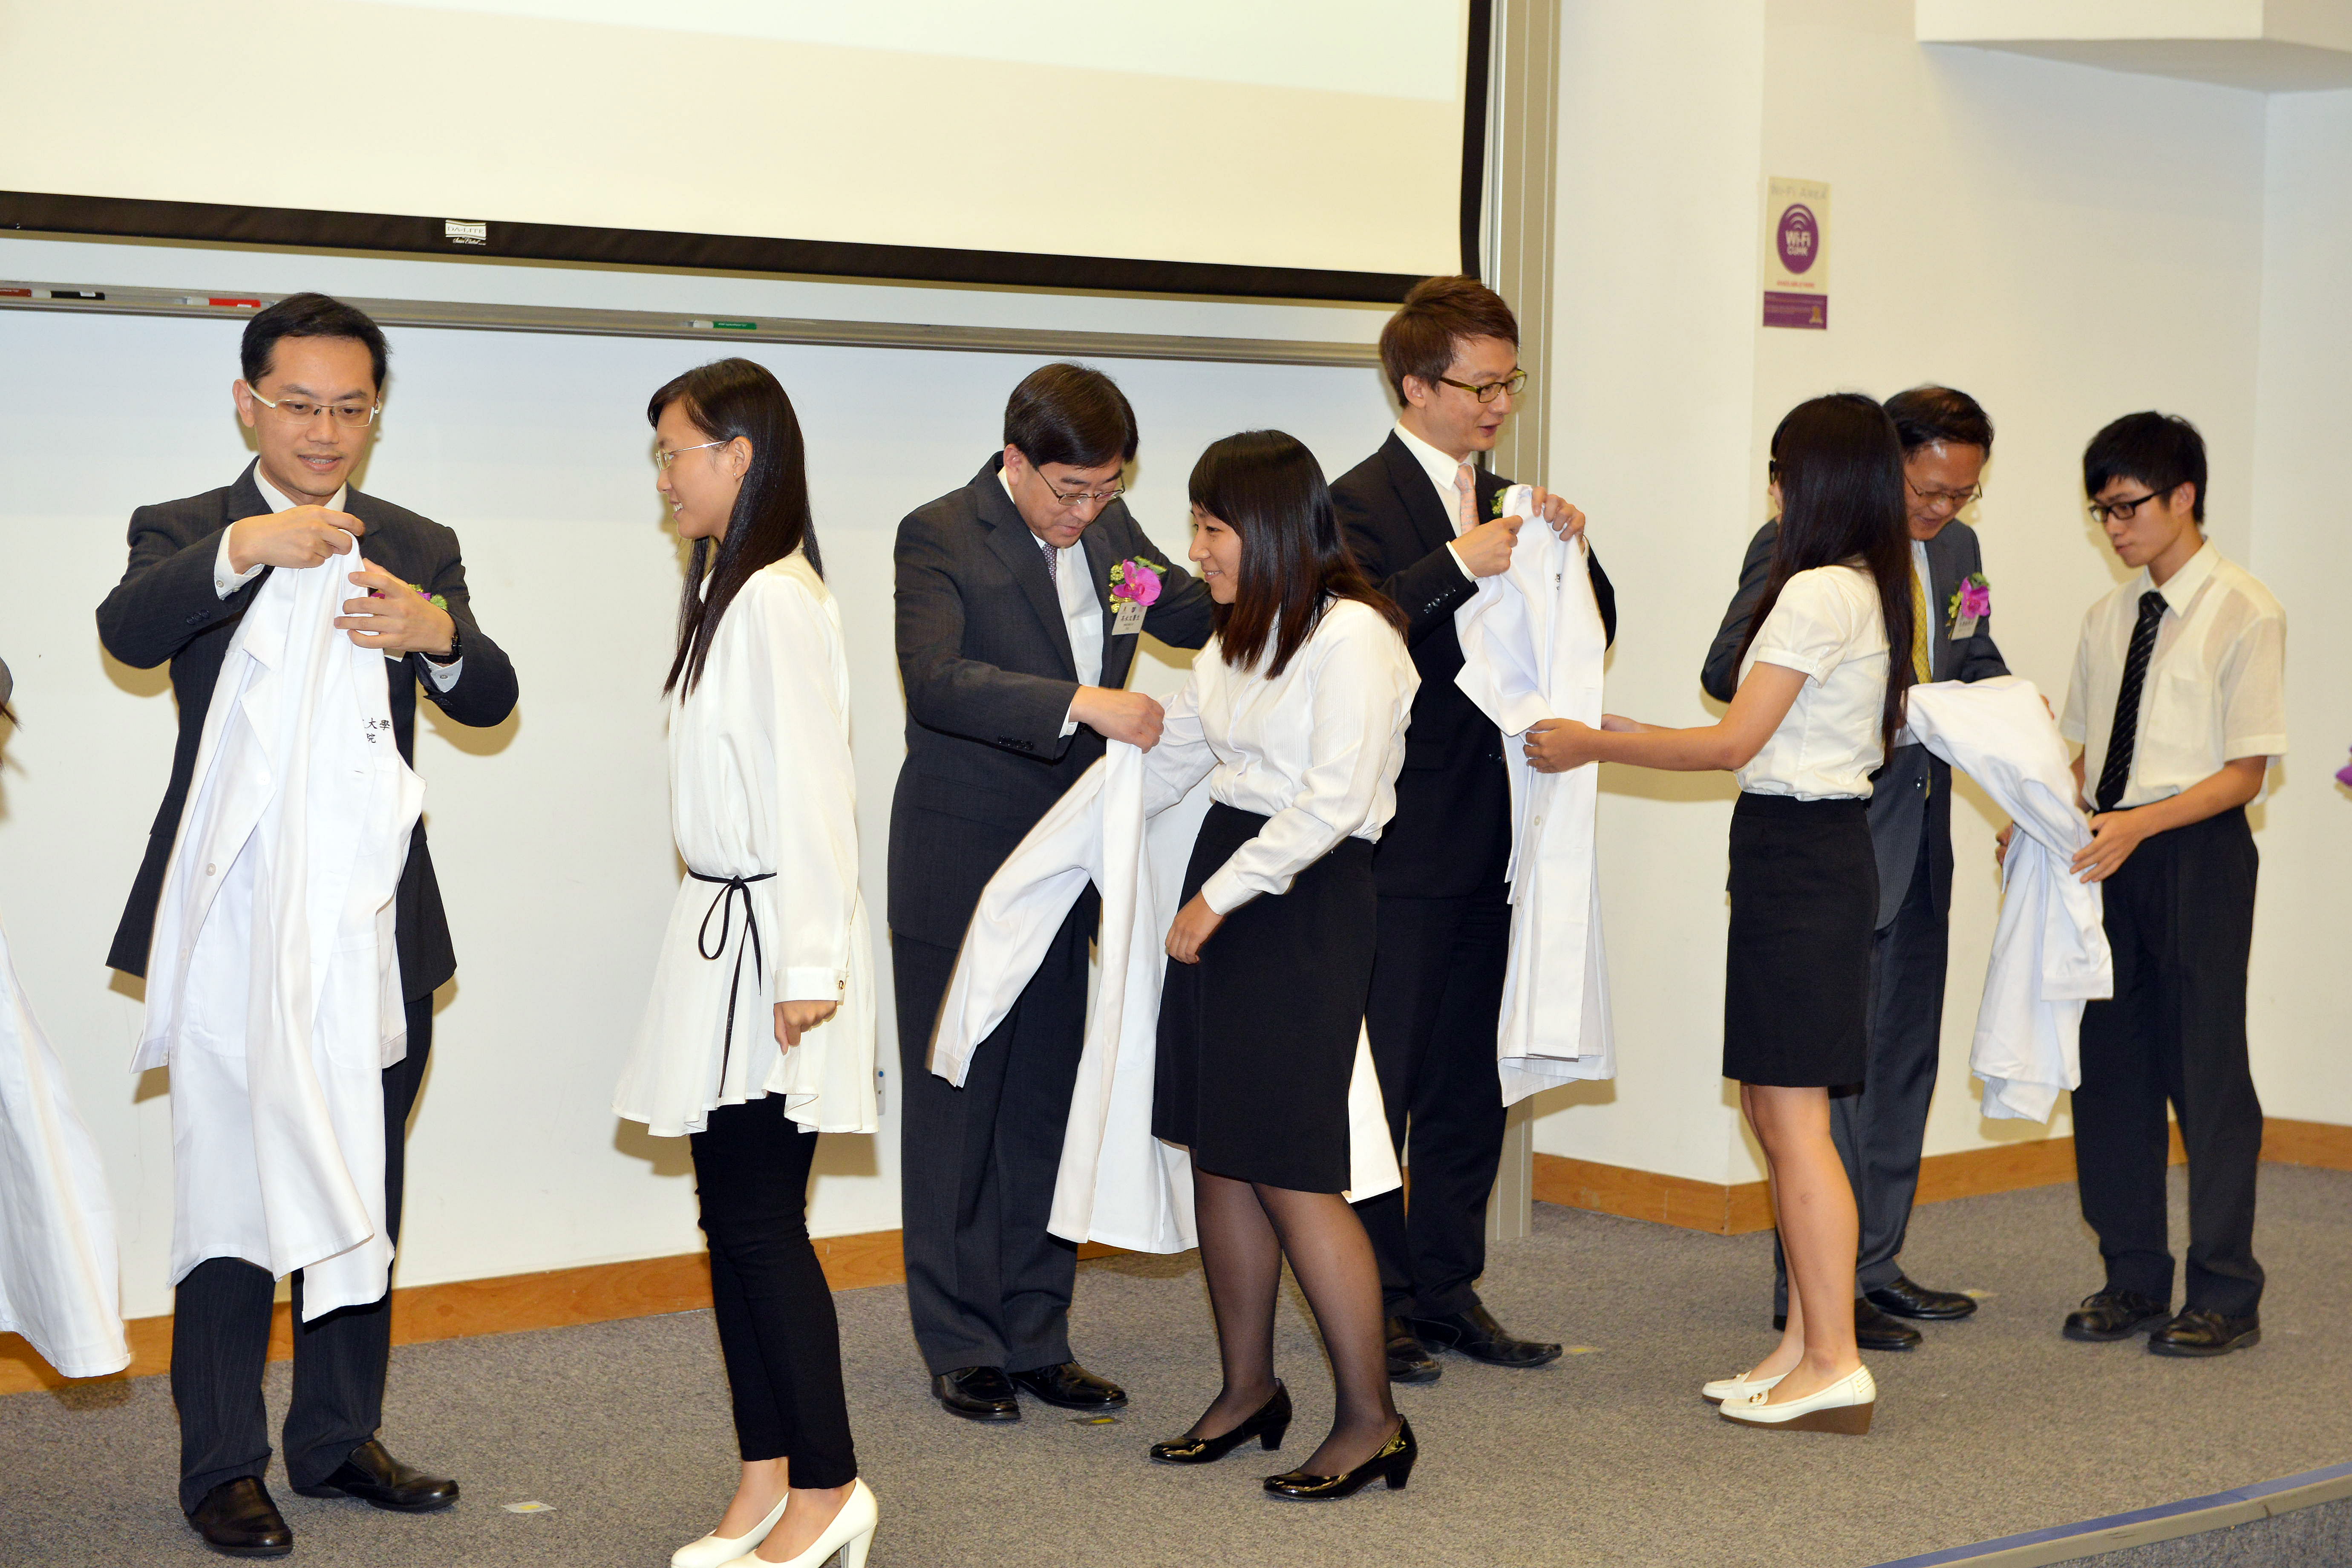 The officiating guests put the white coats on the Chinese medicine freshmen at the White Coat Ceremony.